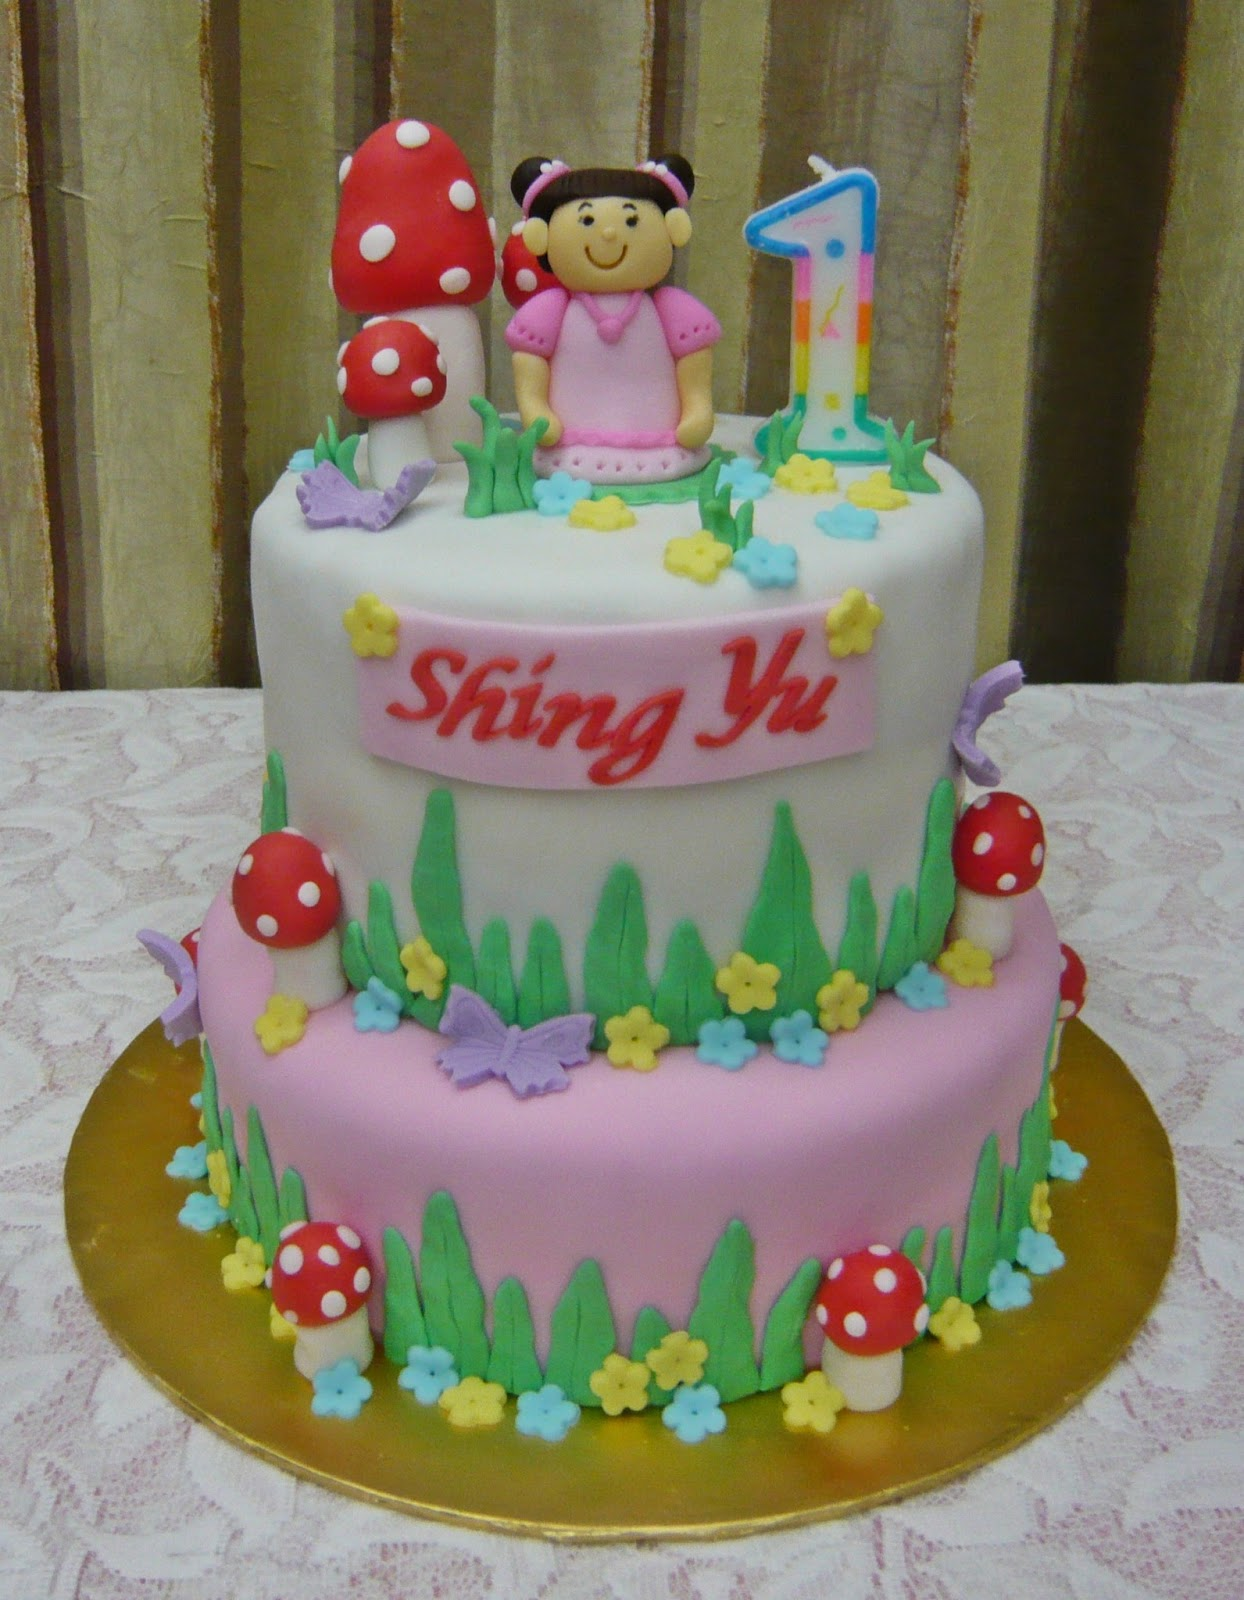 images of cakes with garden theme - photo #30